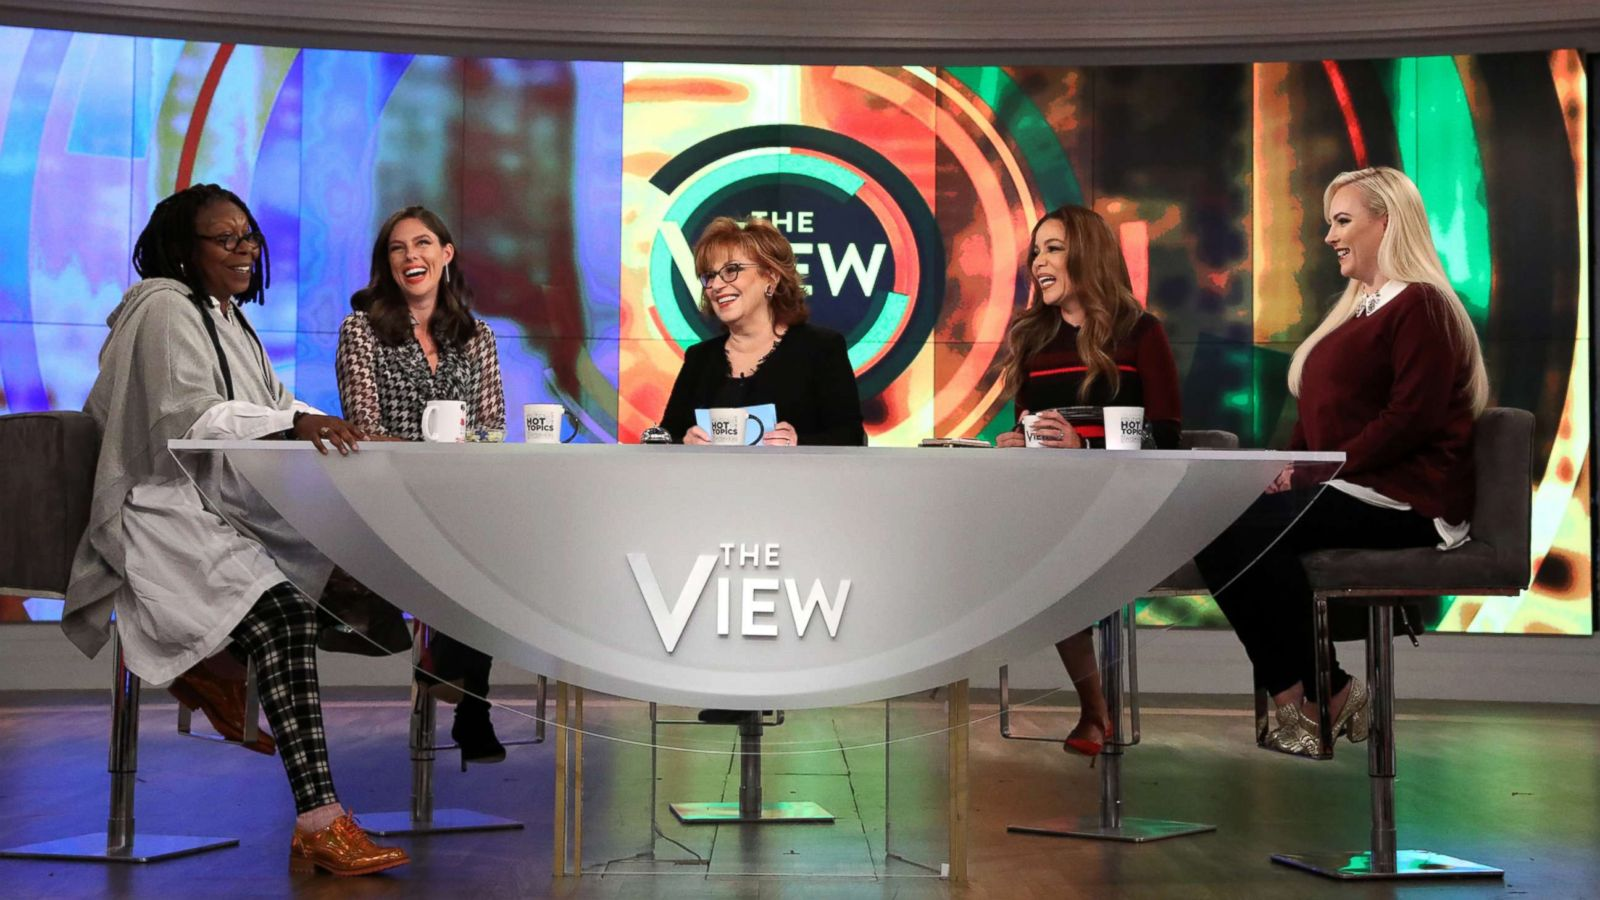 What we're wearing on 'The View' - ABC News